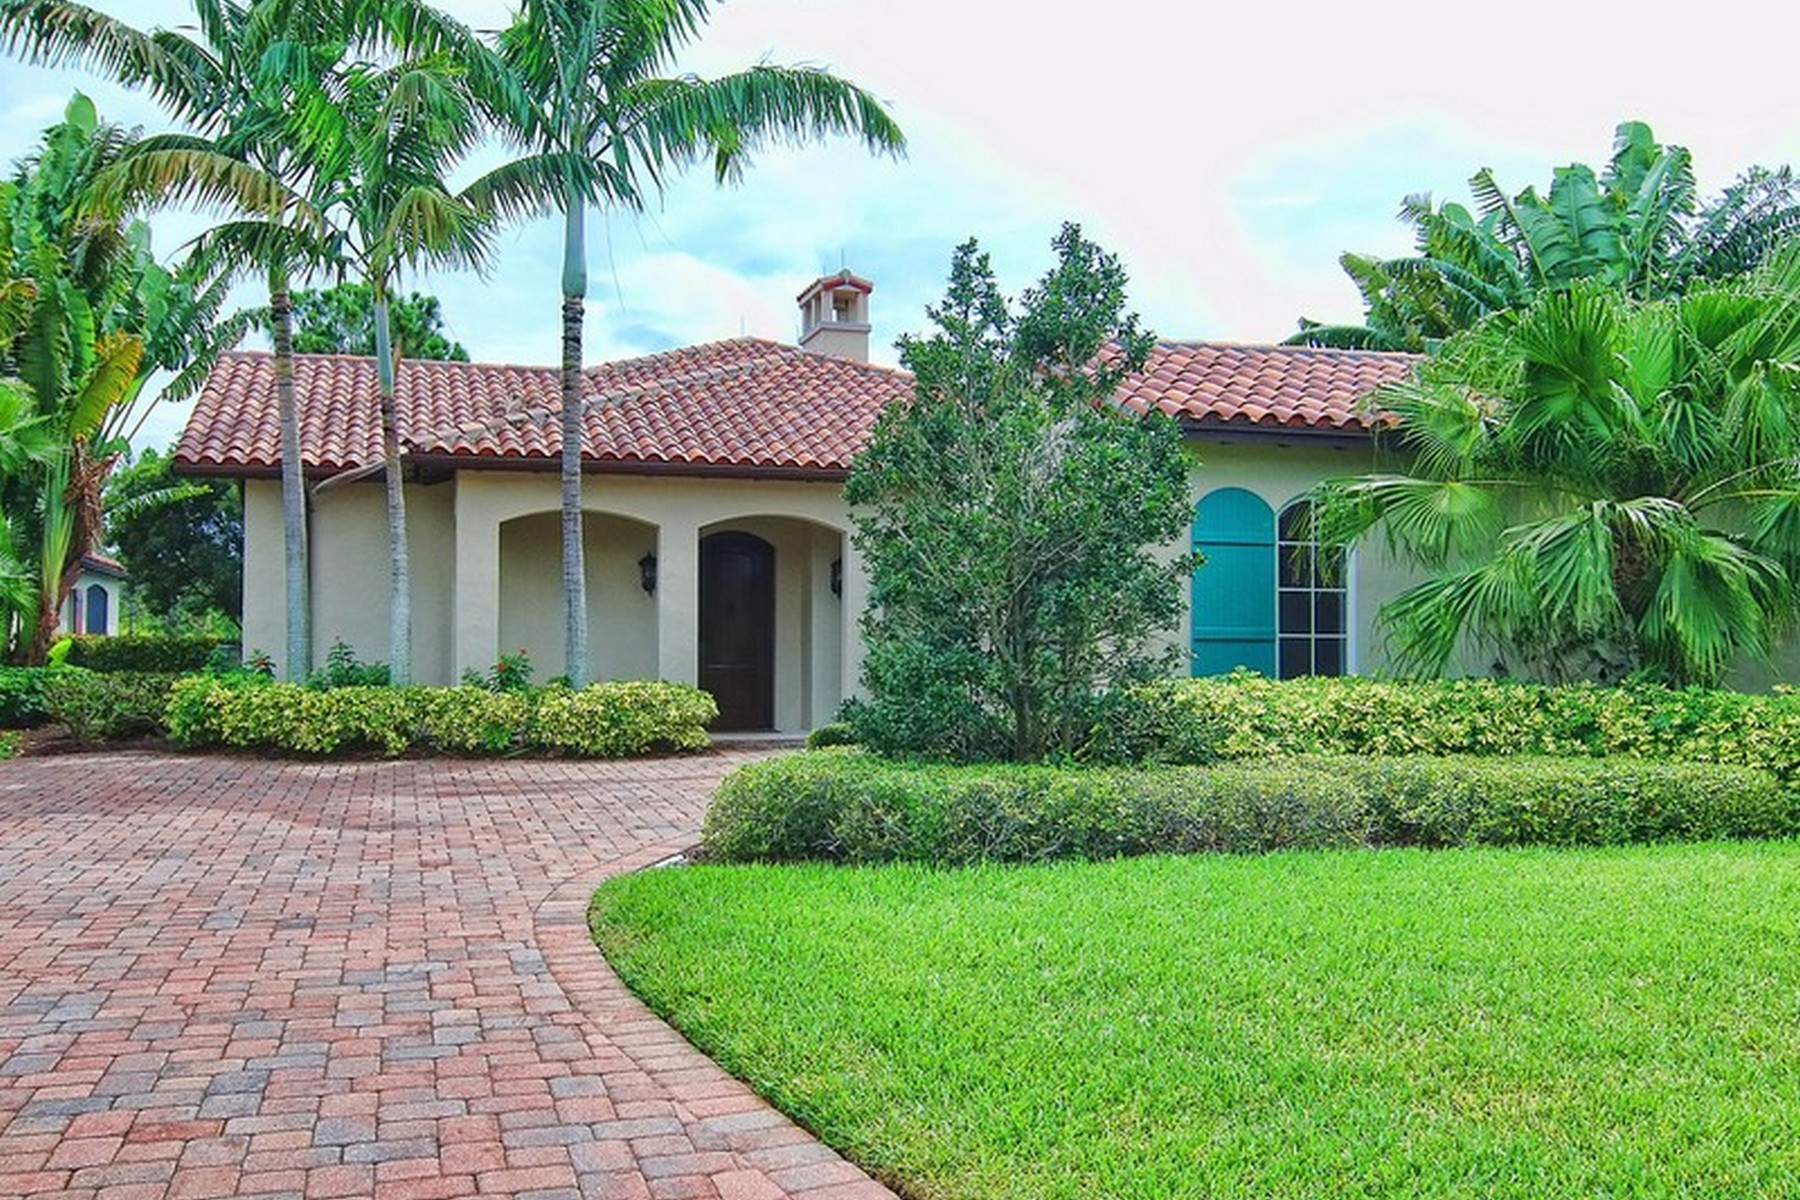 Fractional Ownership for Sale at 651 White Pelican Way (Interest 2) Jupiter, Florida 33477 United States